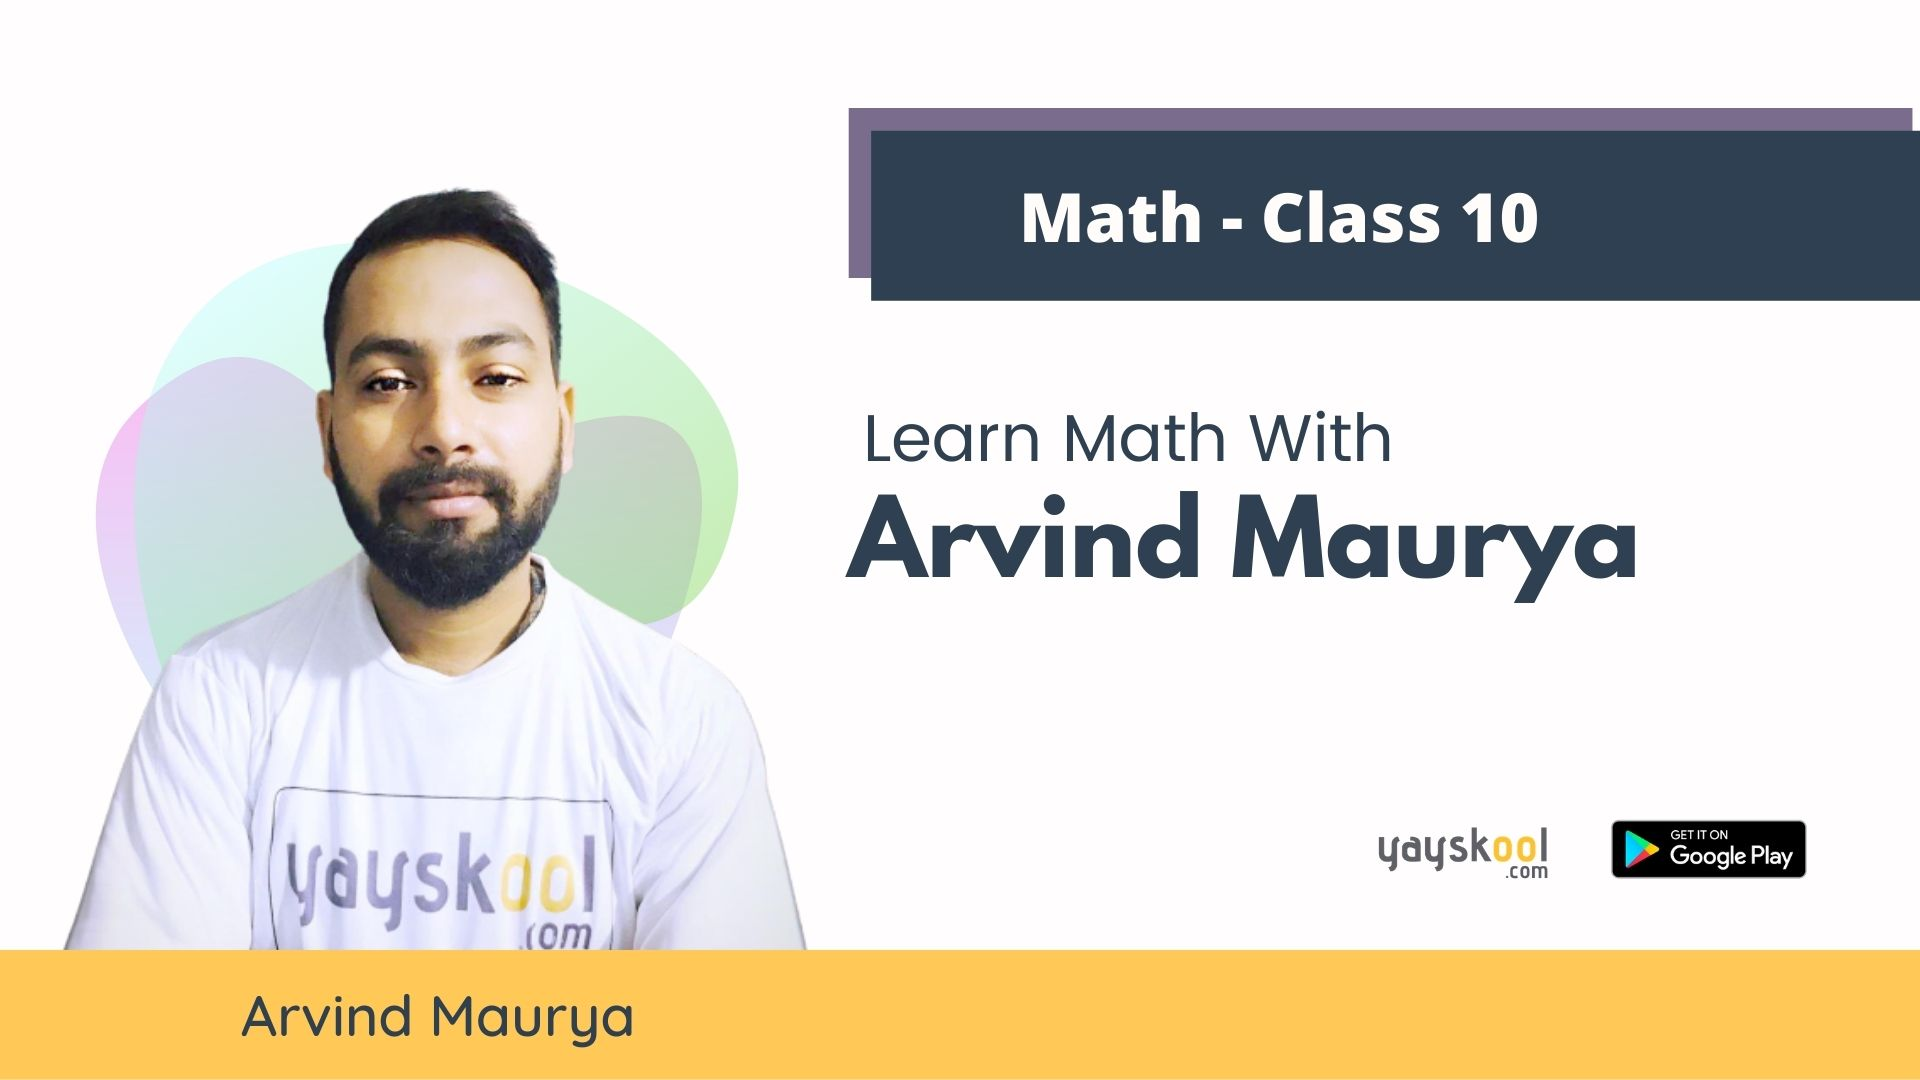 Complete Course - CBSE- Study & Practice Maths With Arvind Maurya - Class 10